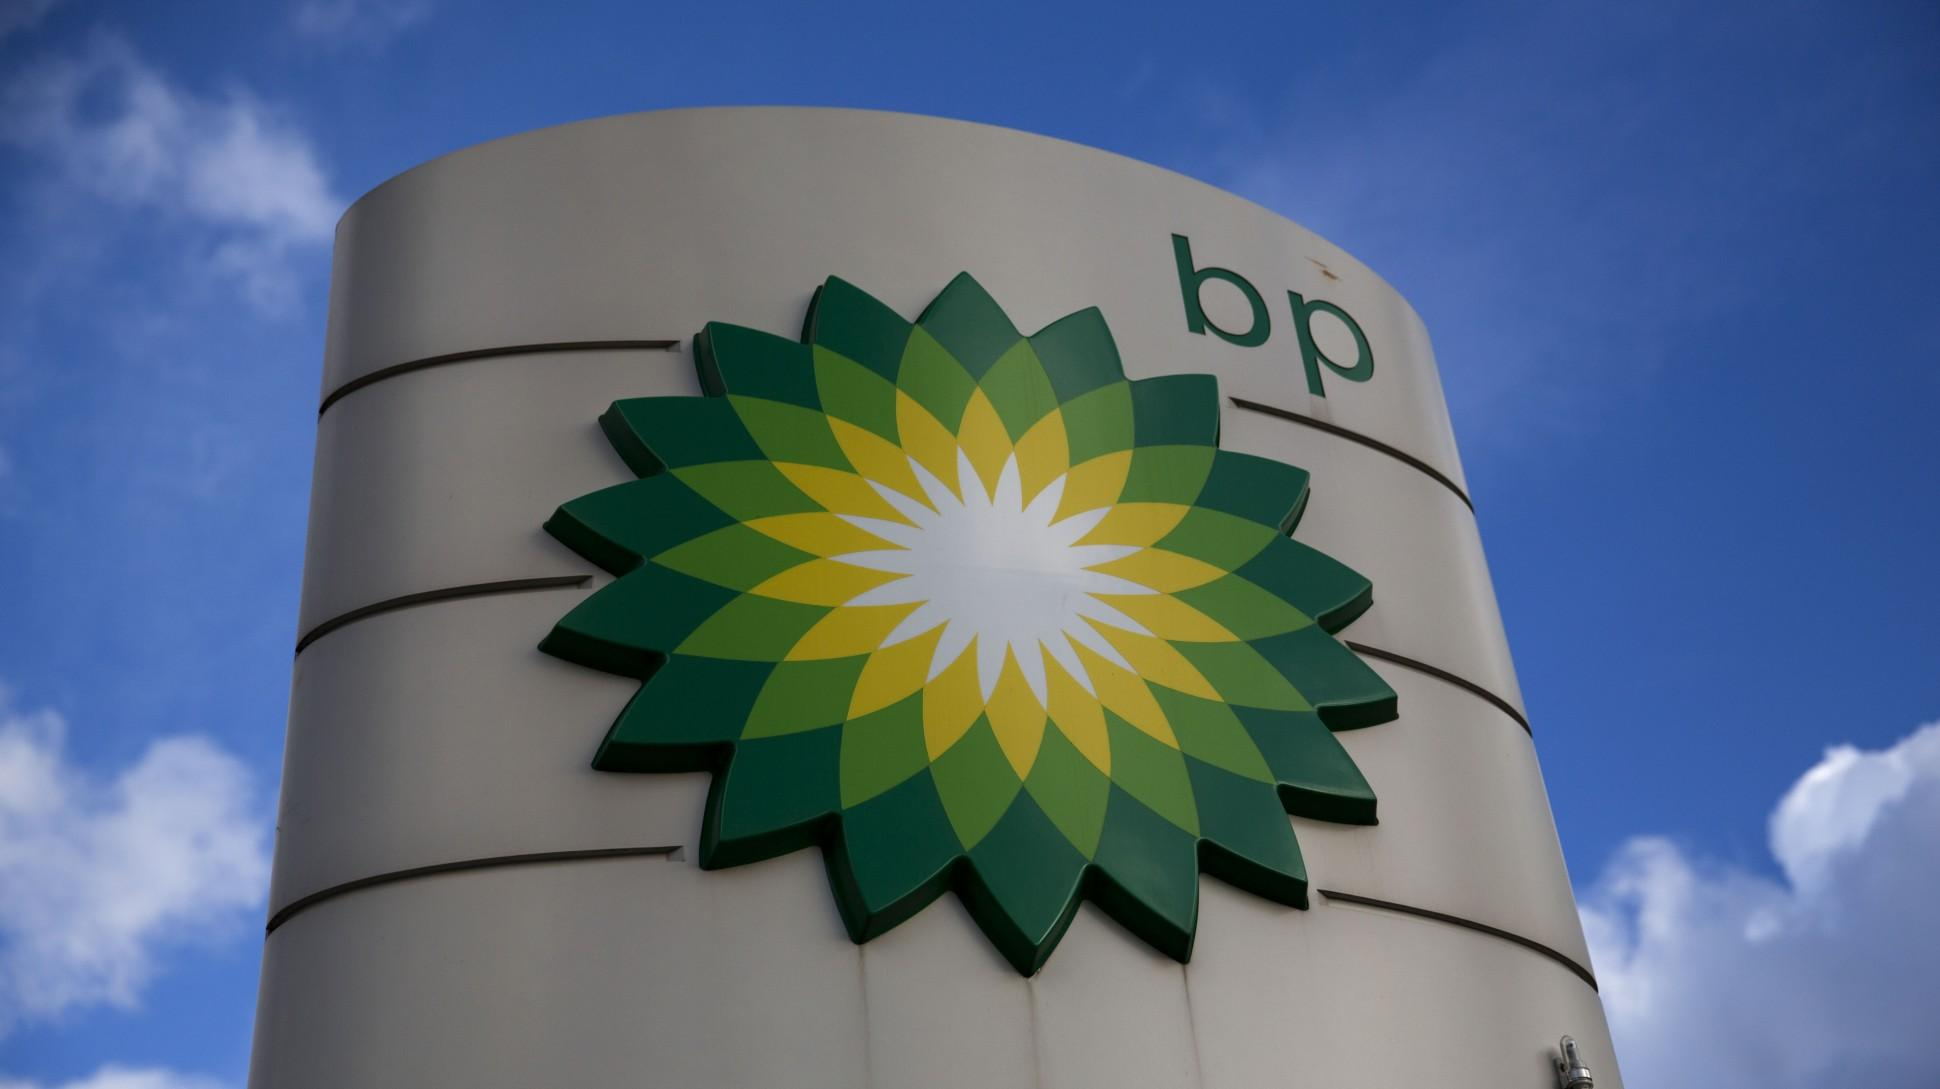 Rápido avance de renovables y del gas, prevé BP Energy Outlook 2019